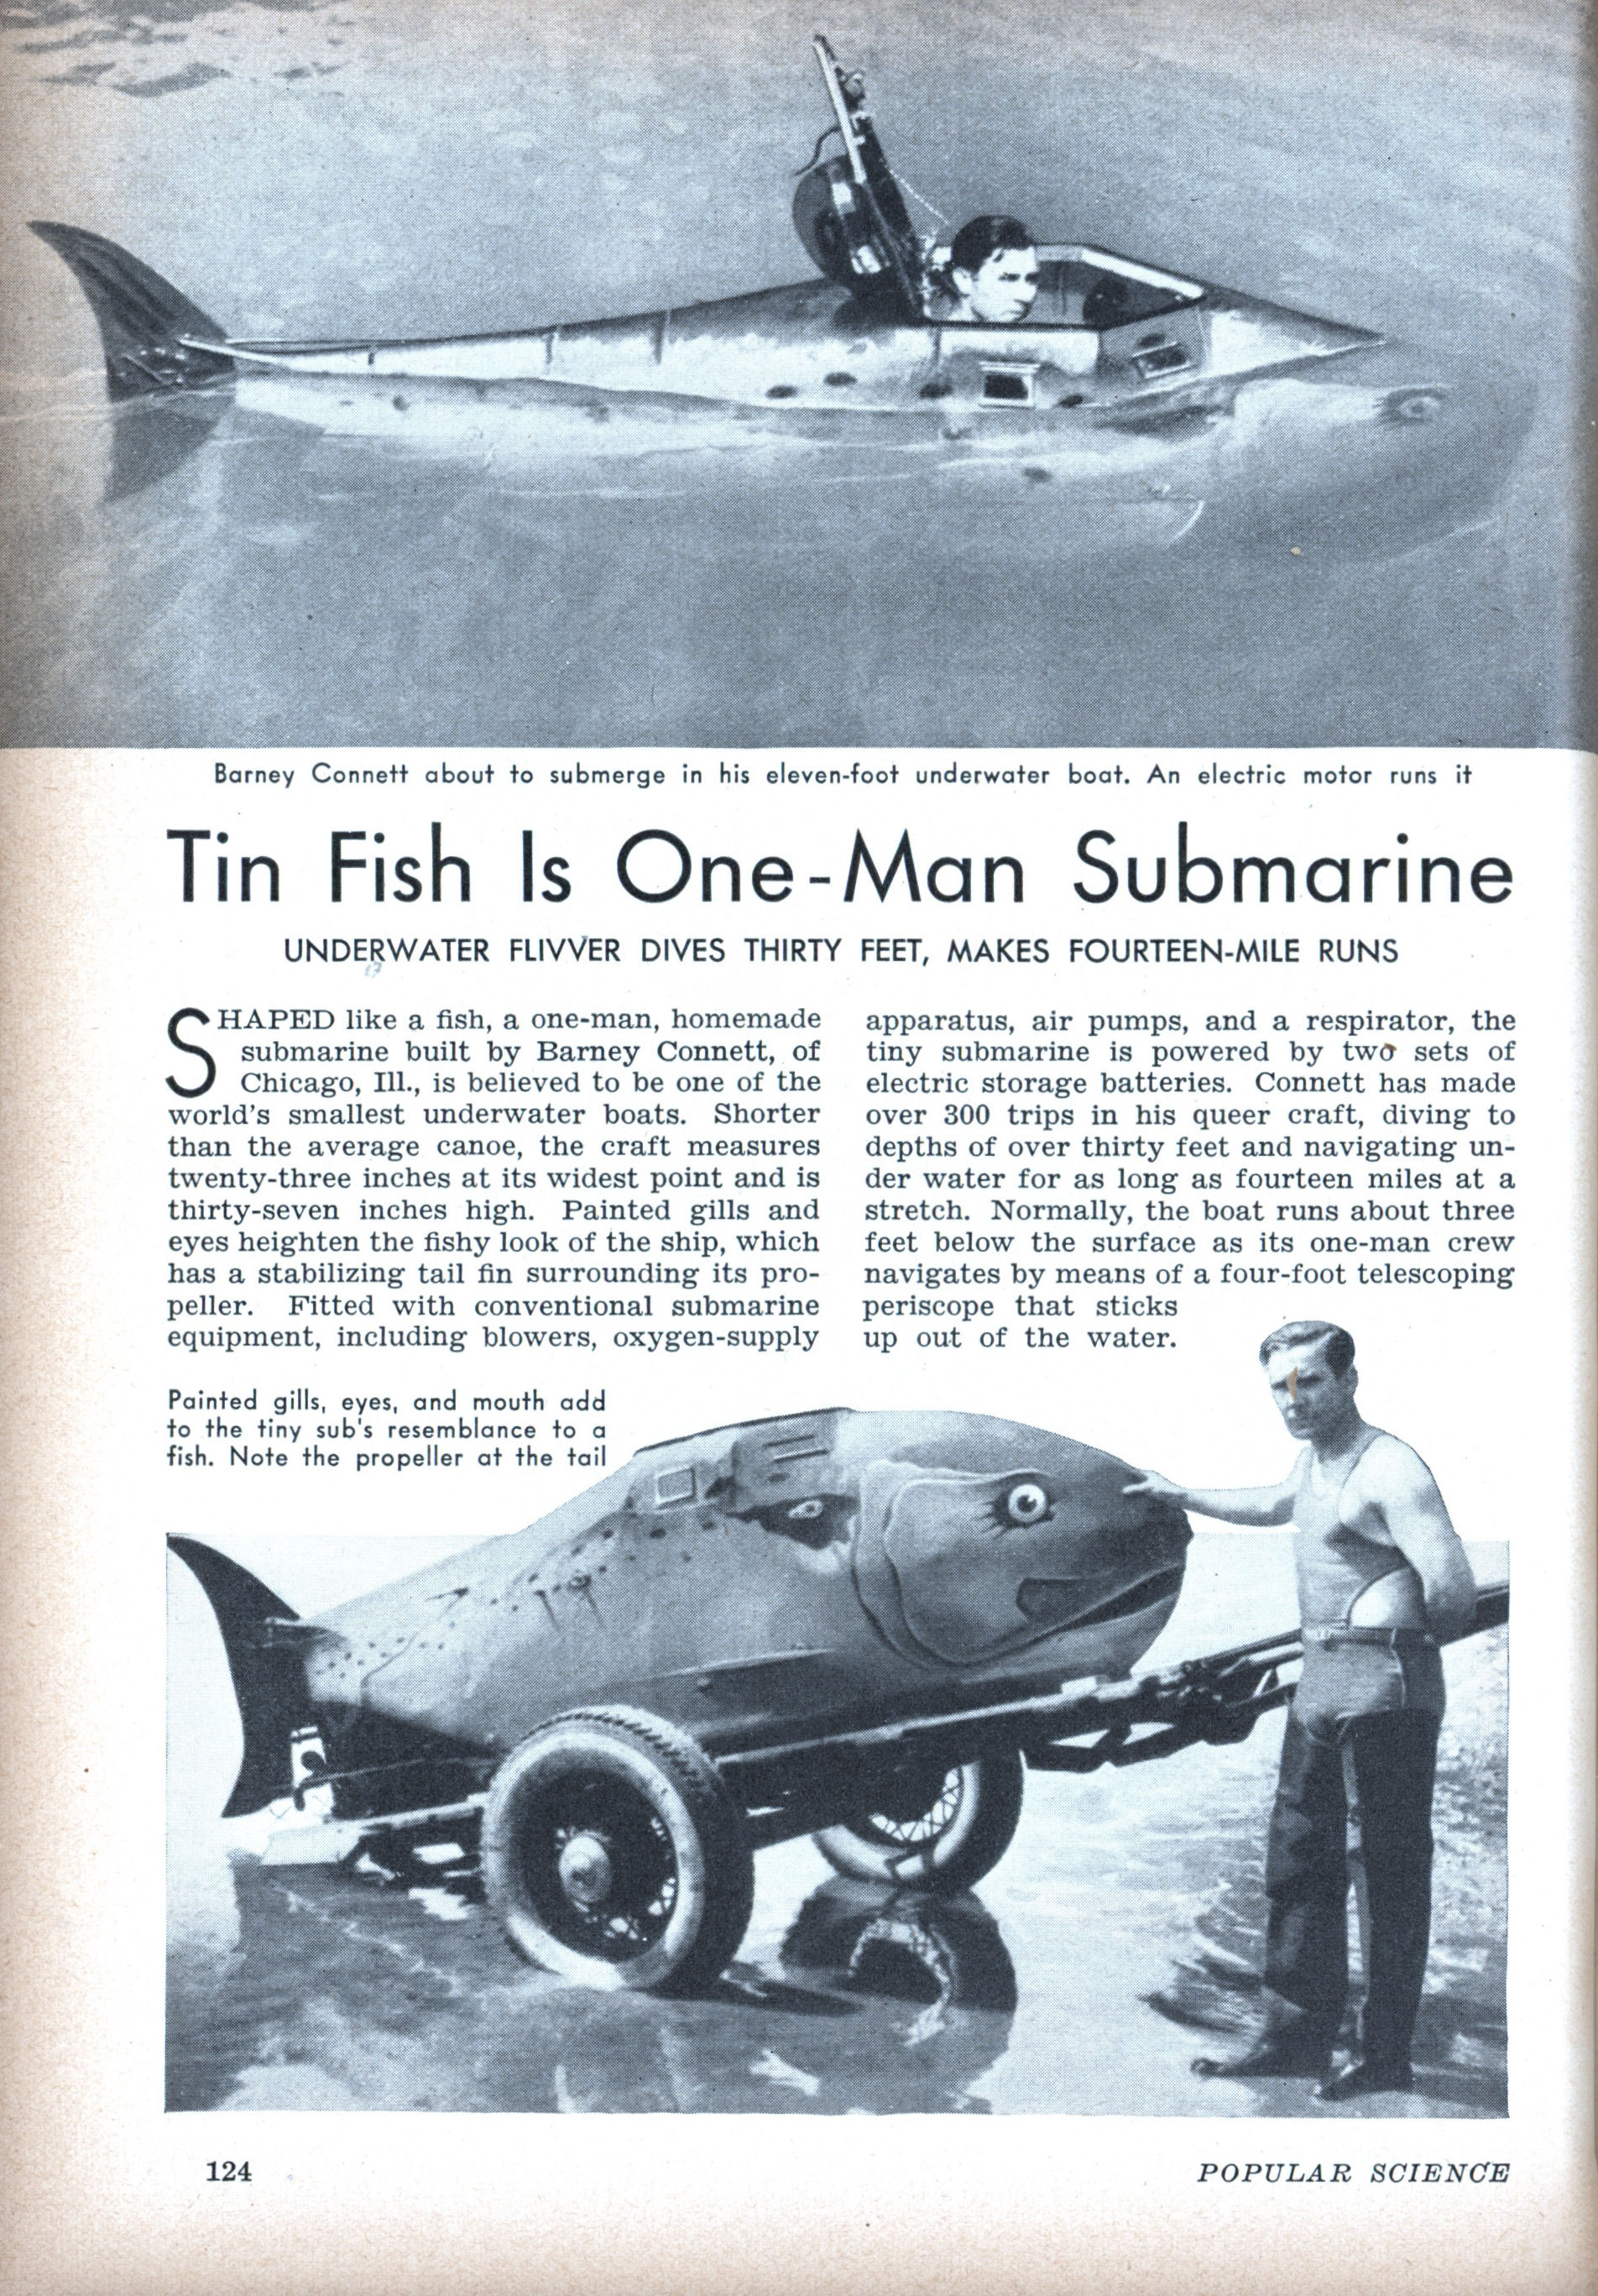 One Man Submarine Plans http://blog.modernmechanix.com/tin-fish-is-one-man-submarine/